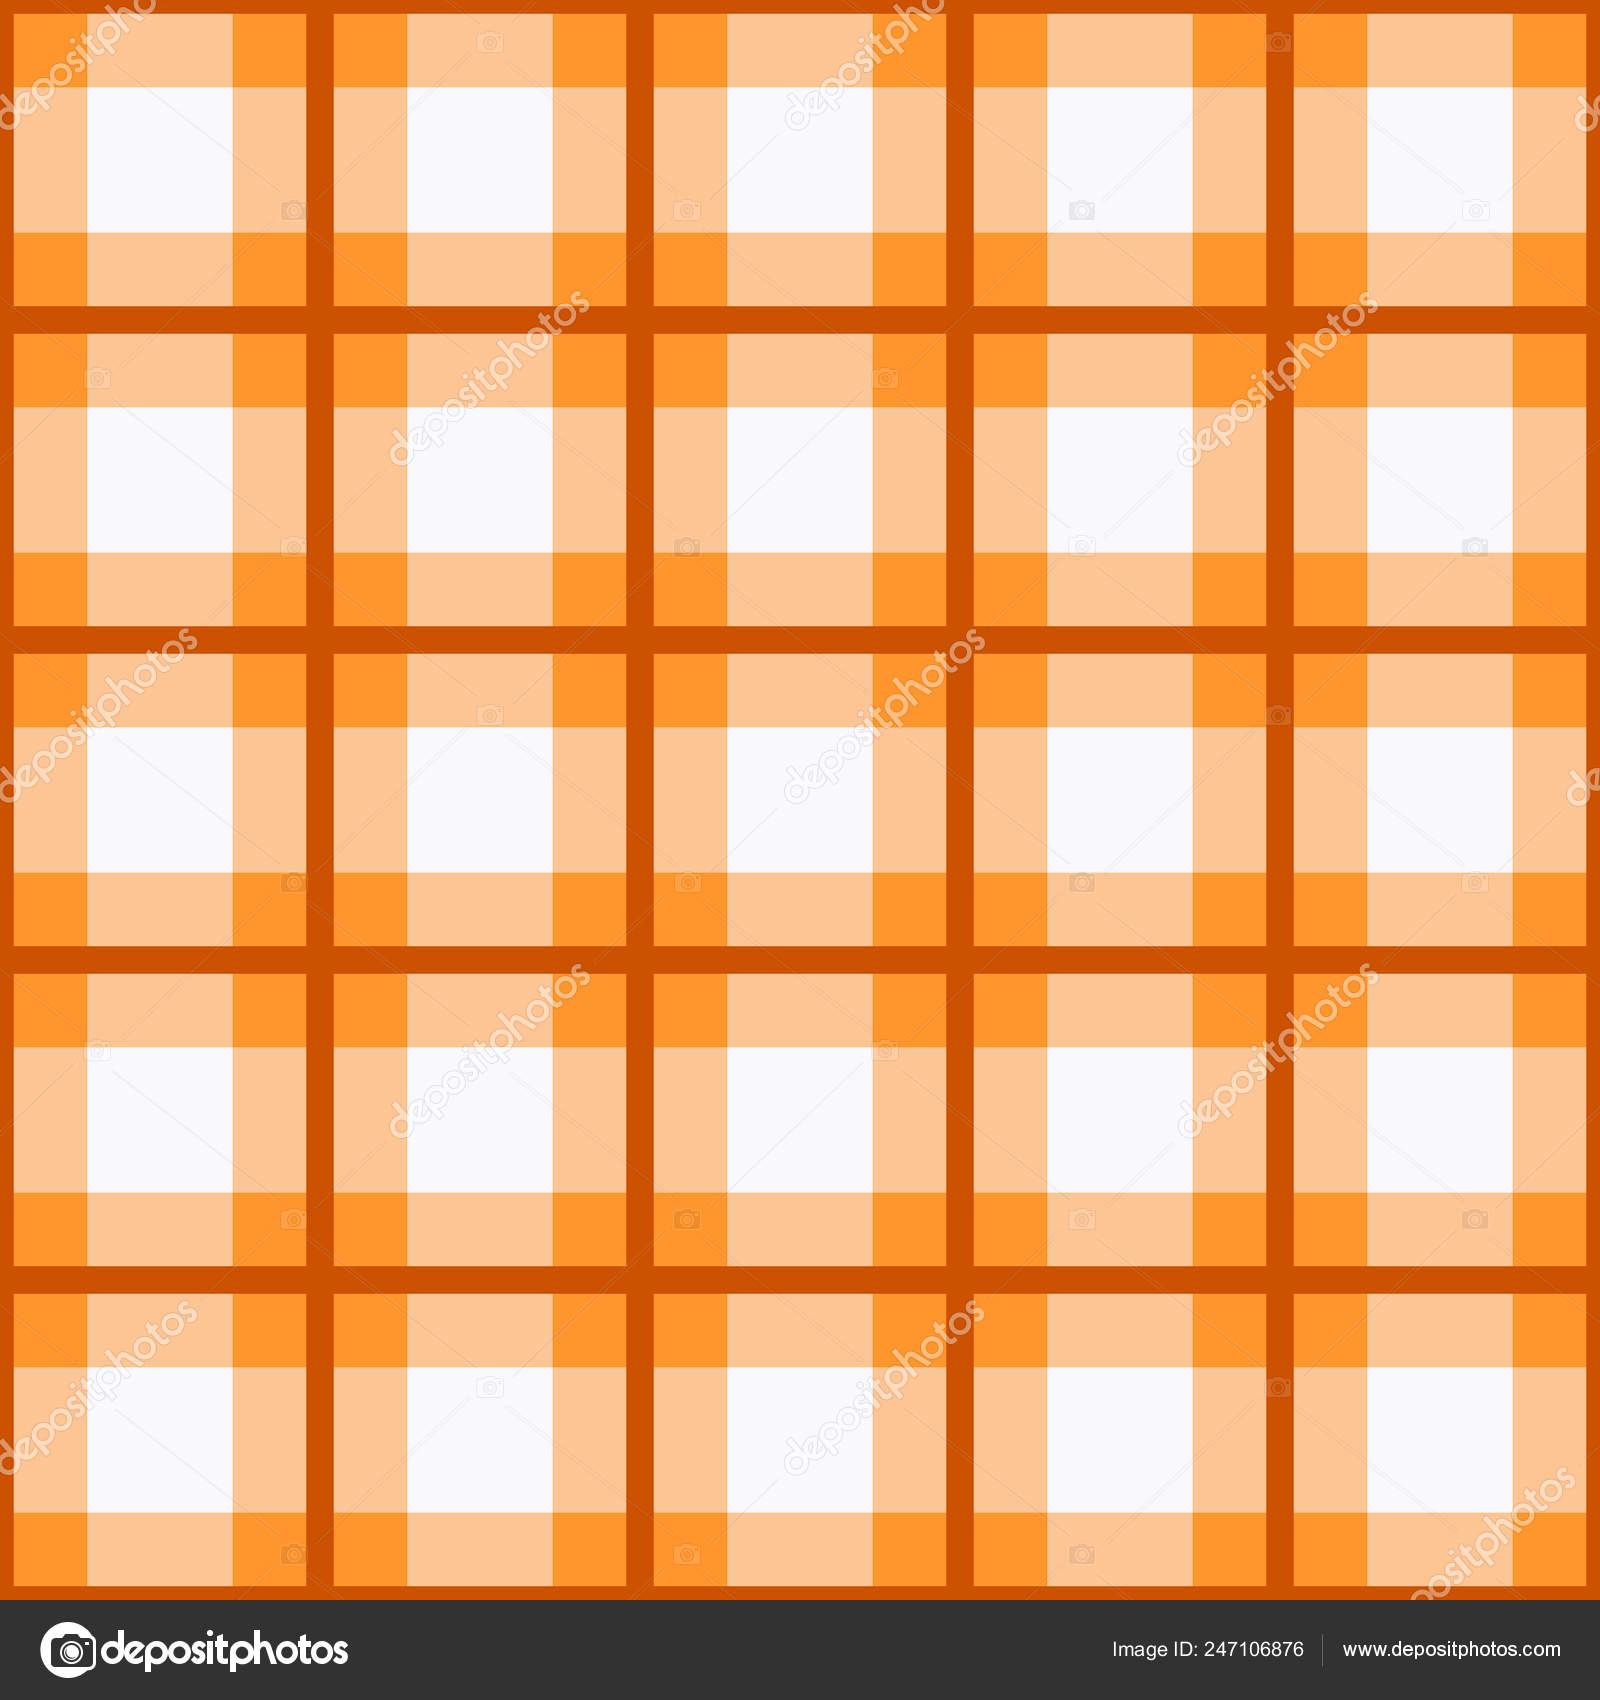 188b91ead5 Seamless tartan plaid pattern. Traditional checkered fabric texture in  palette of orange, yellow, and white. eps 10 — Vector by  elnourbabayev.gmail.com